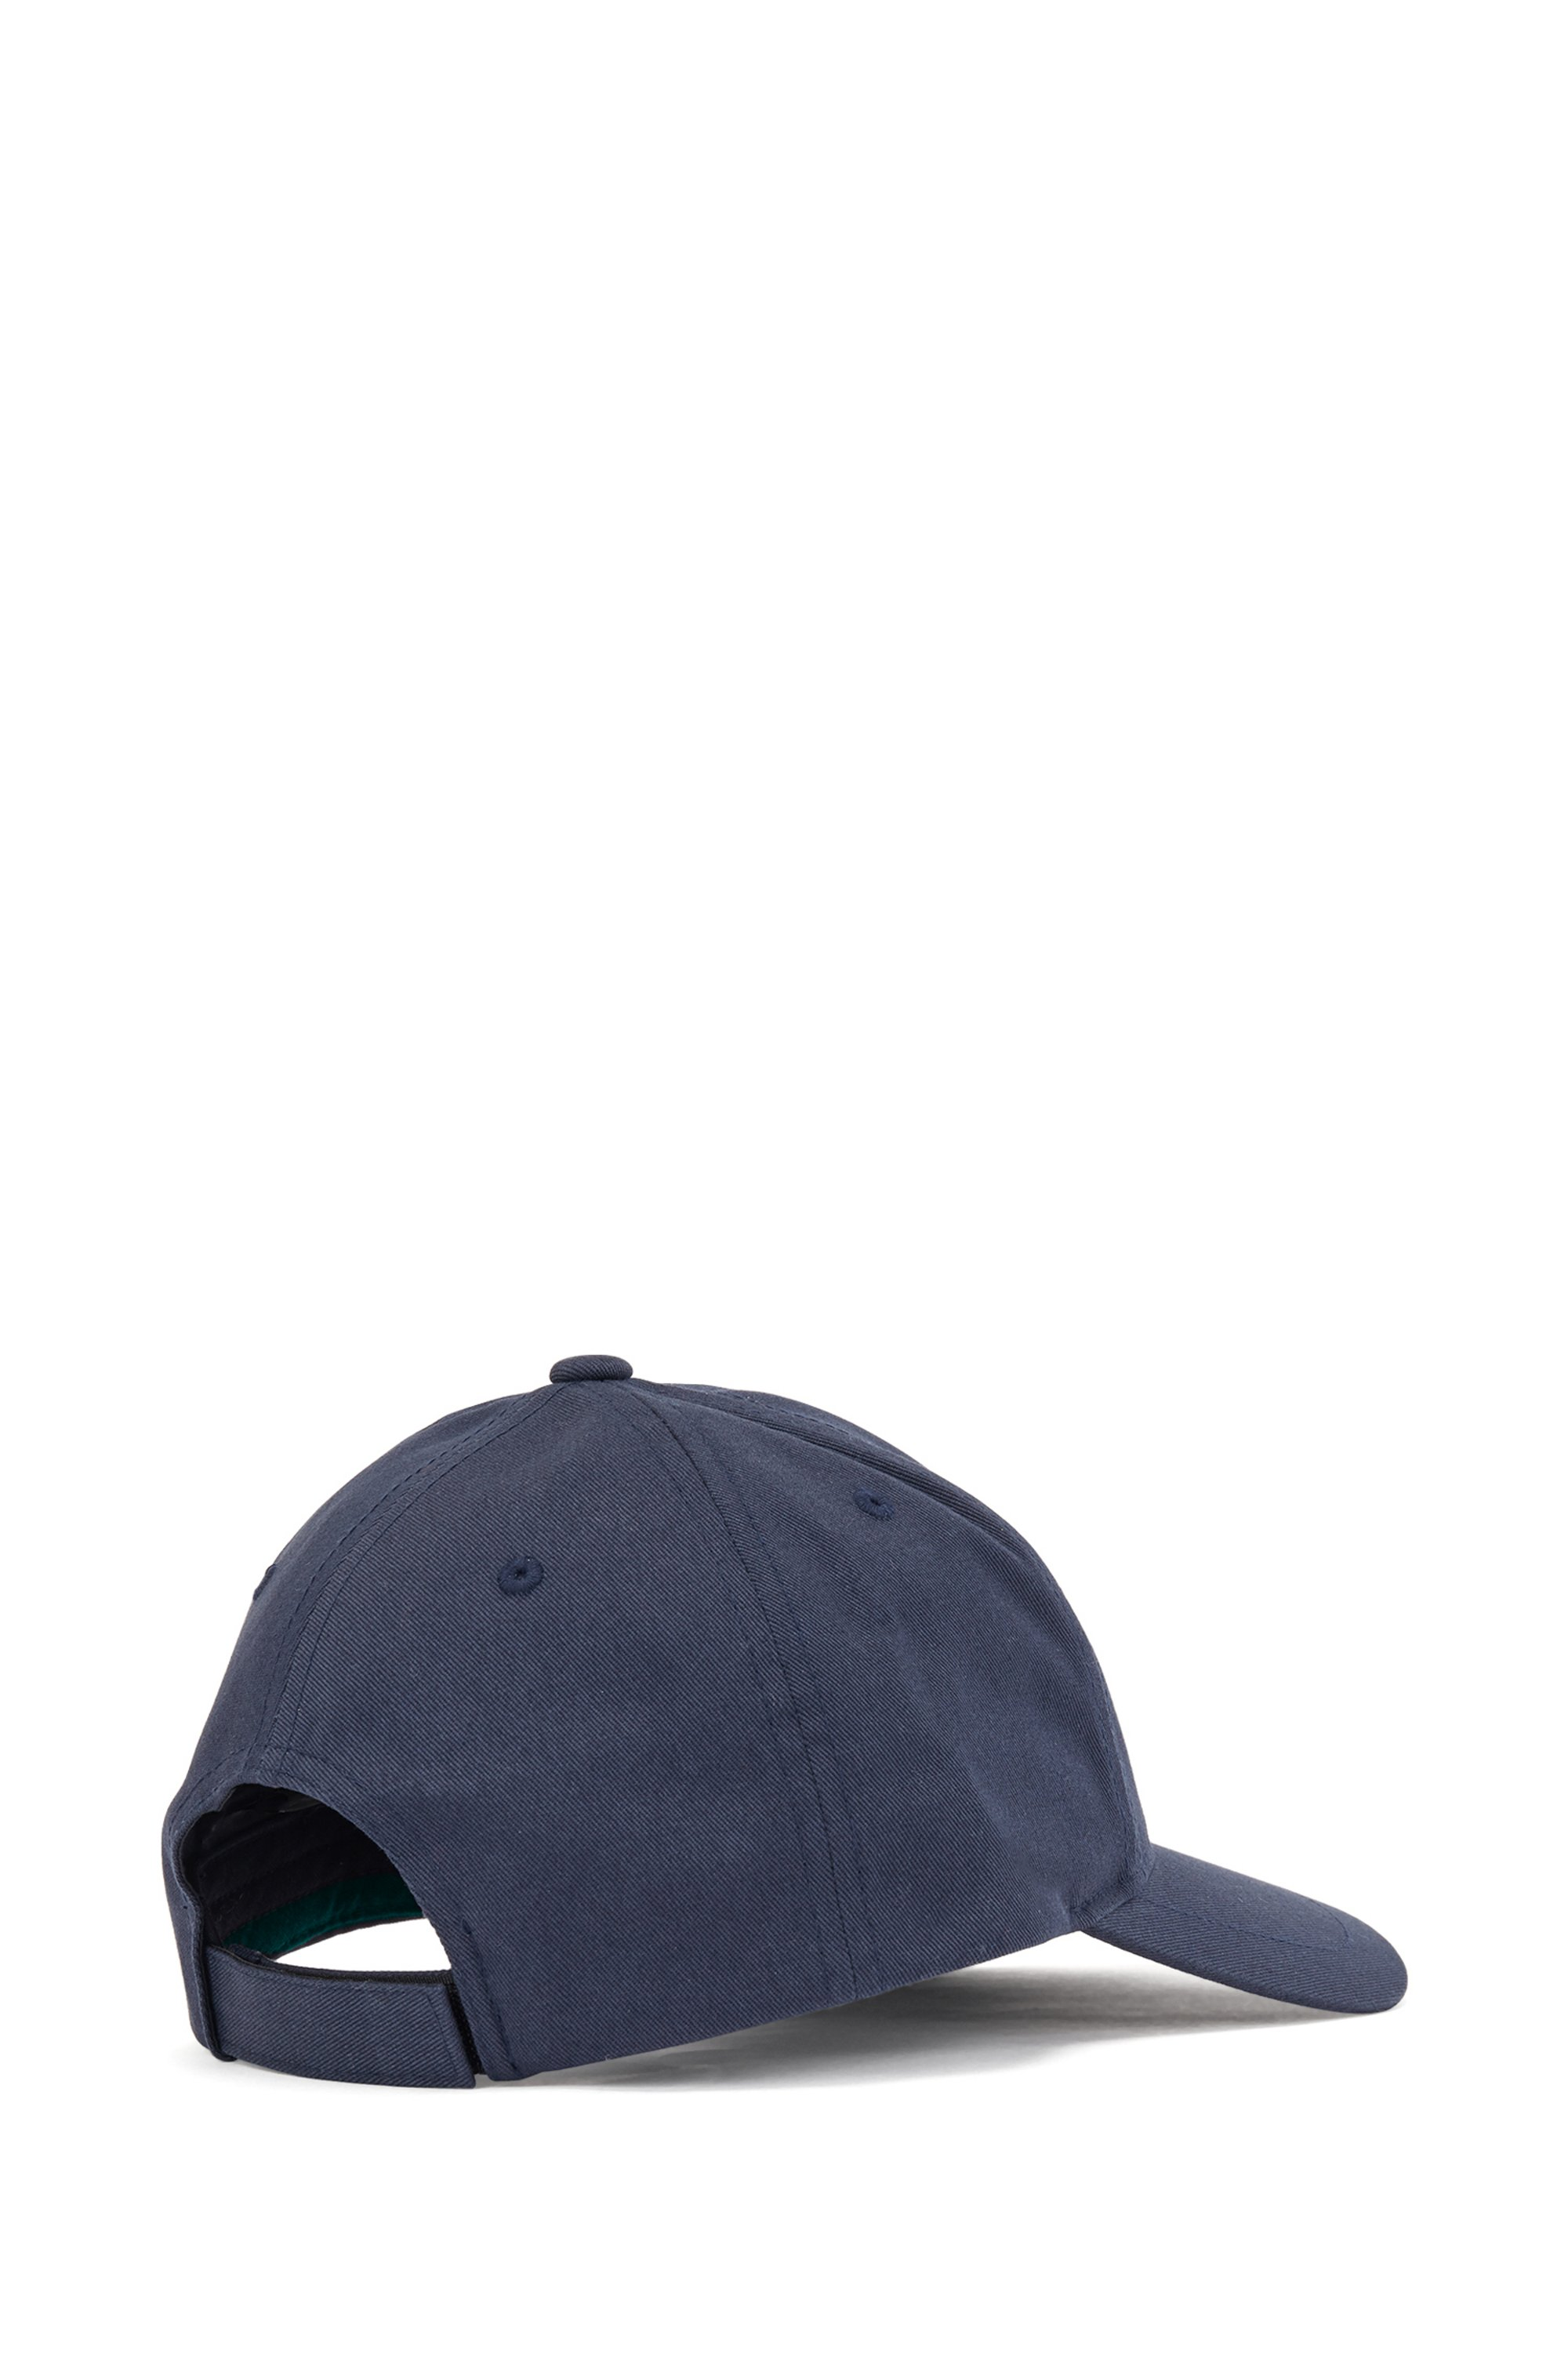 Cotton-twill cap with high-definition logo print